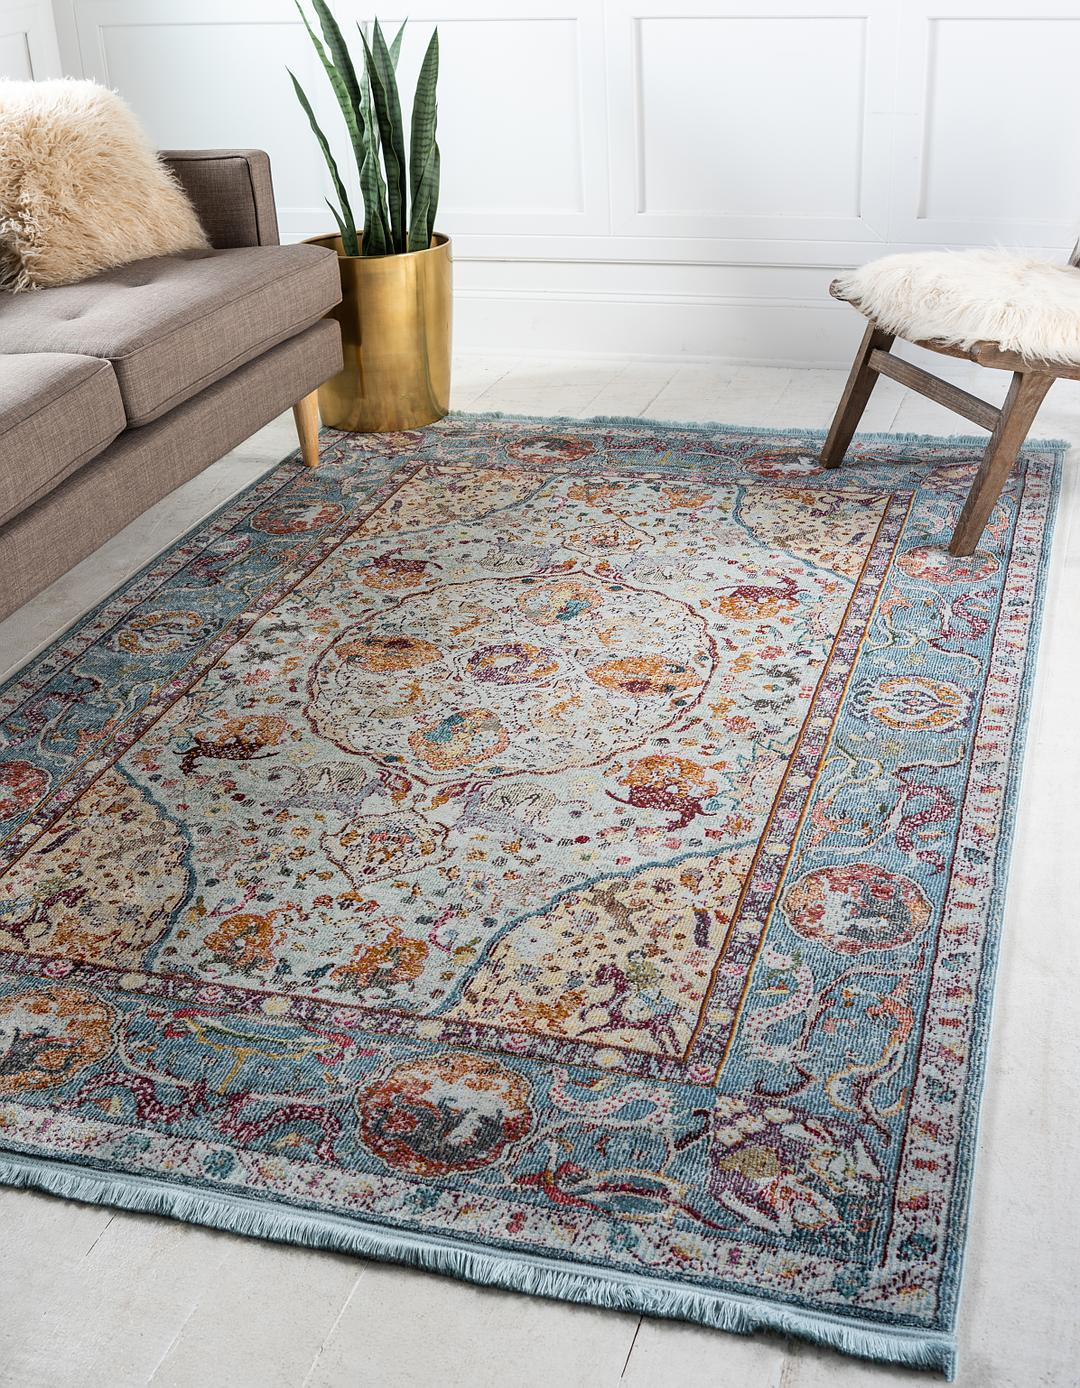 home mucsat shag rugs collection of affinity area org rug beautiful living fluffy wonderful room cozy x for